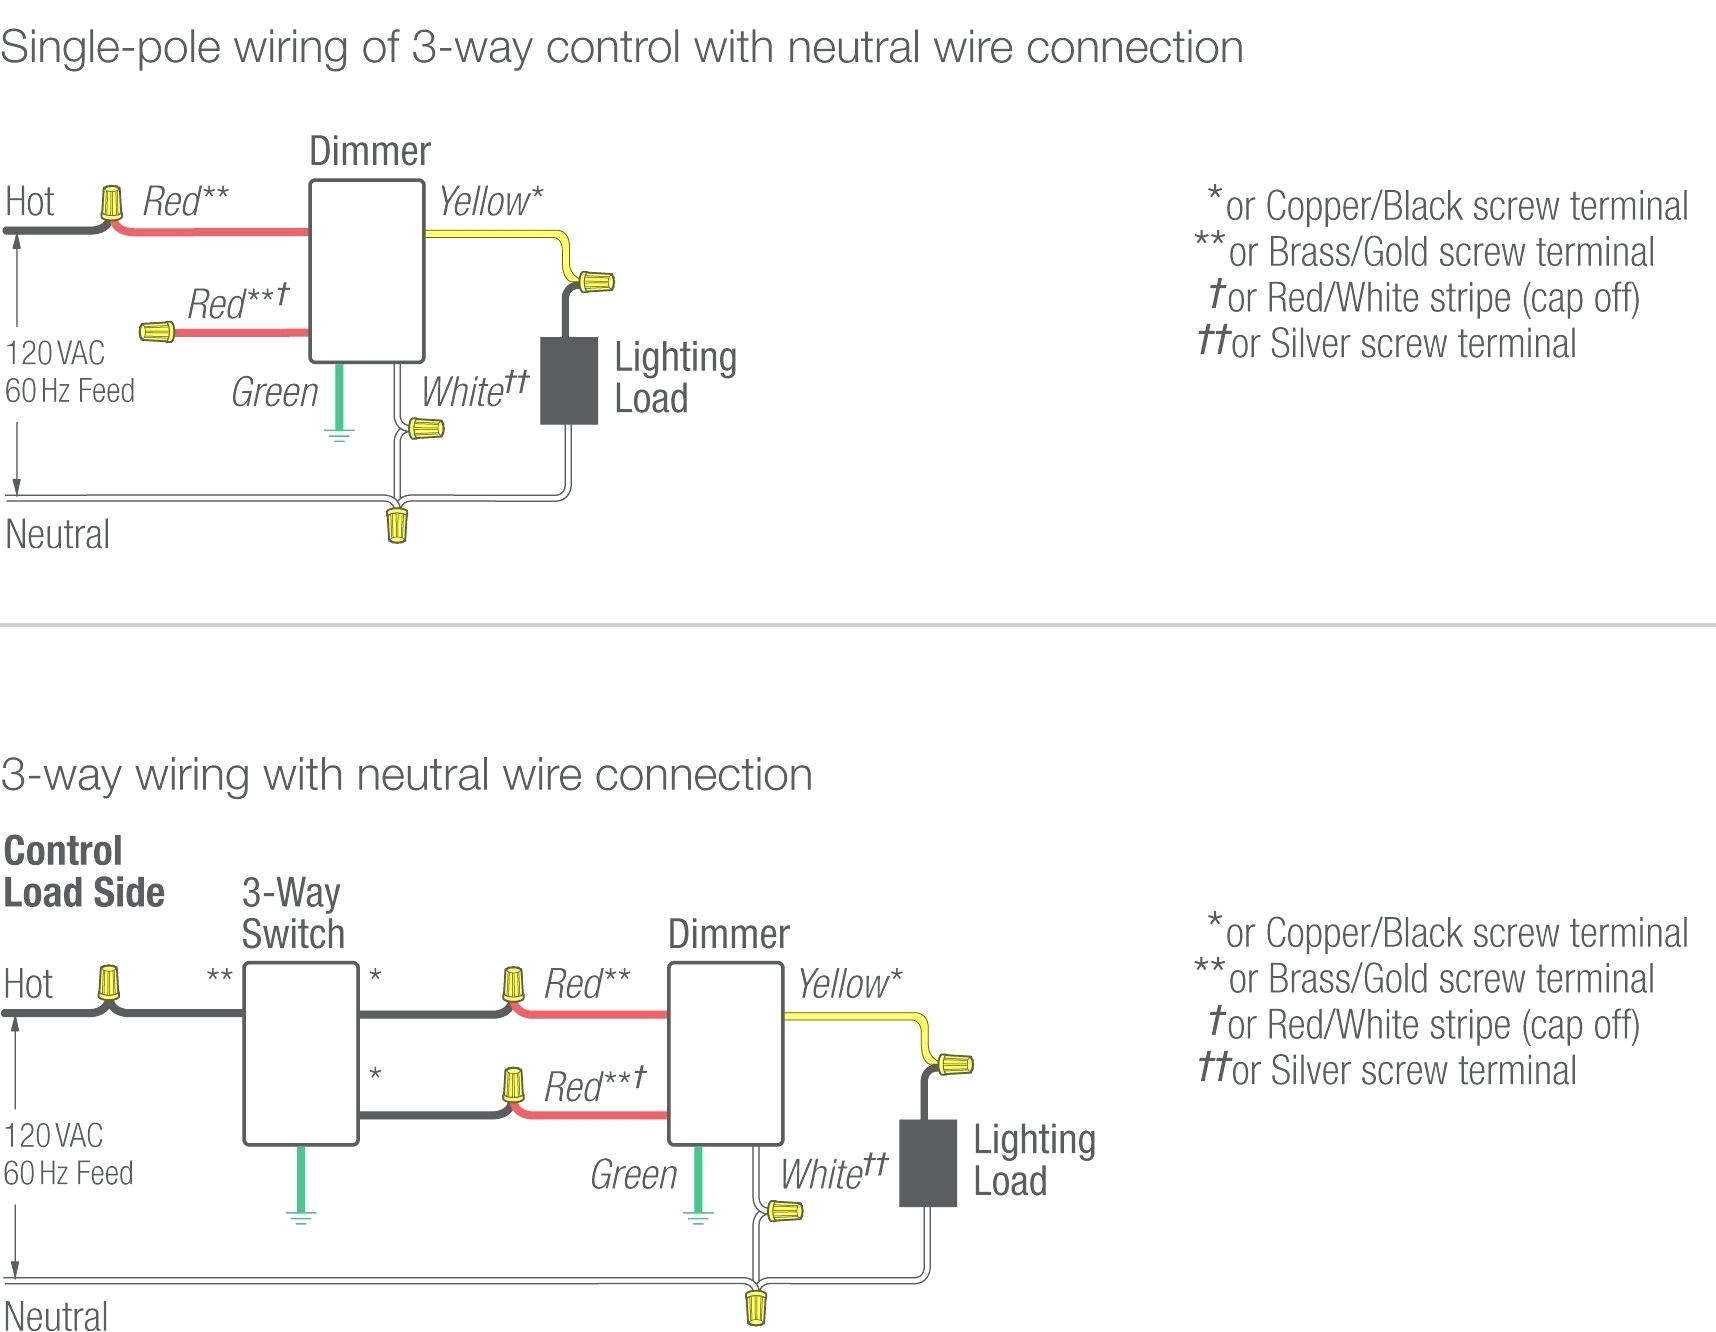 lutron dv 600p wiring diagram Download-Lutron Dvcl 153p Wiring Diagram Fresh Fantastic 3 Wire Switch the Best Electrical Circuit Diagram 10-i